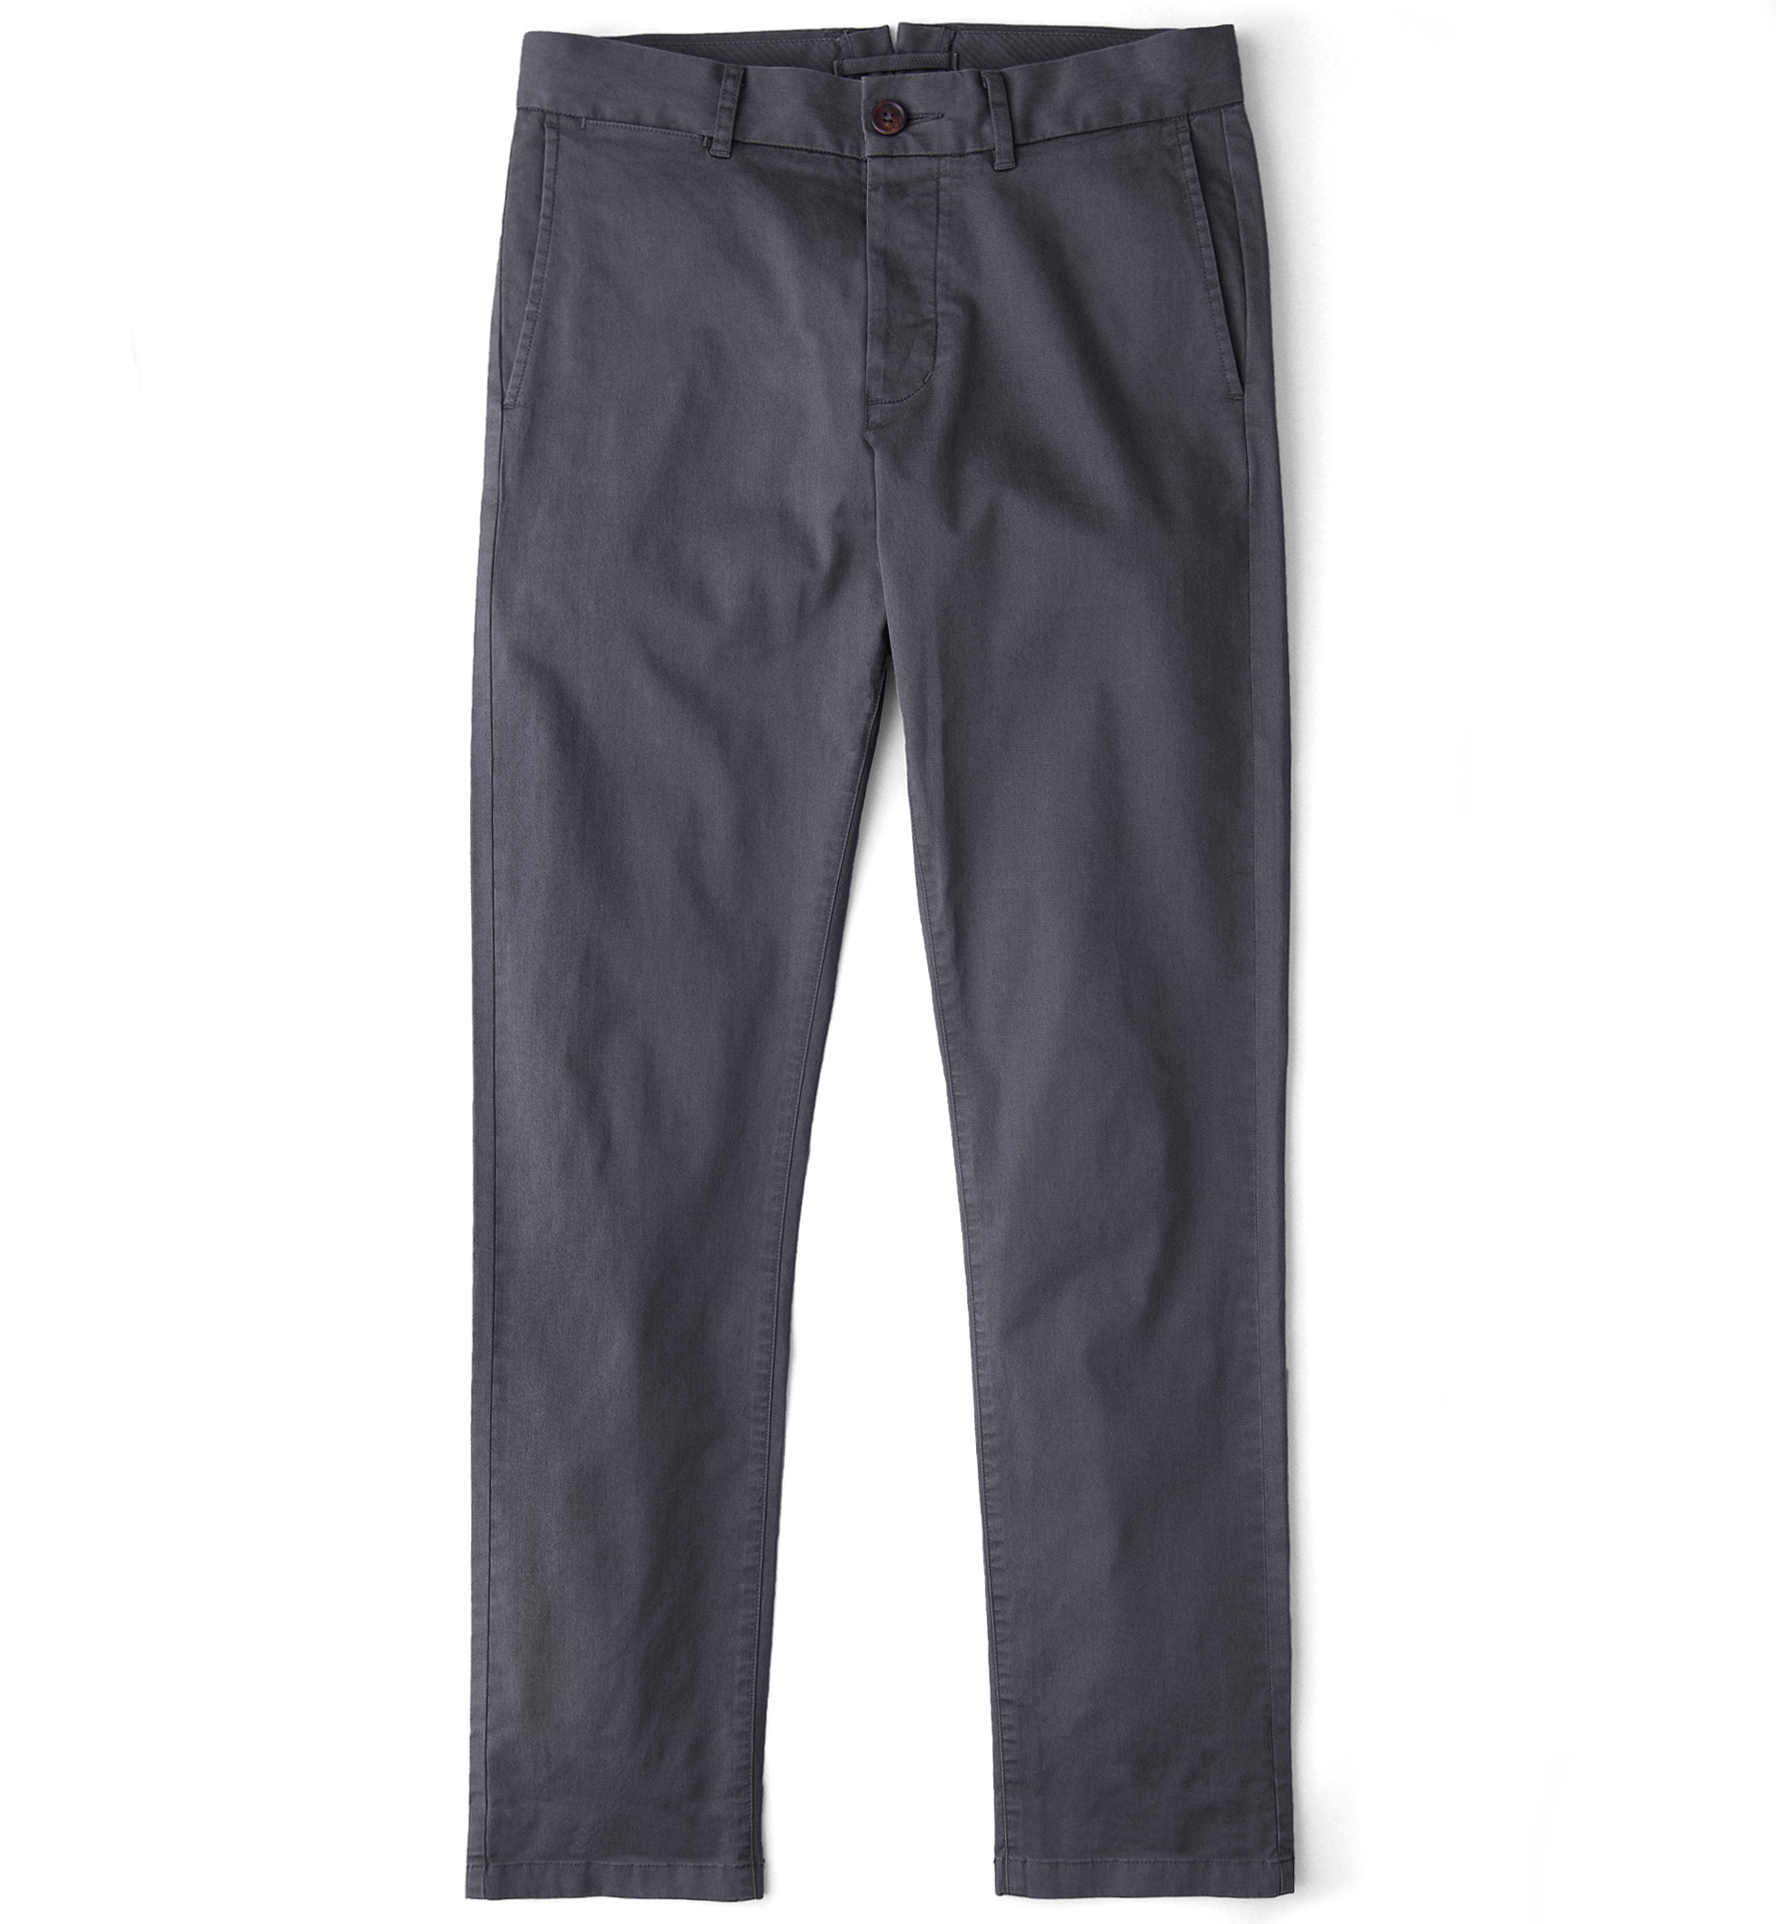 Zoom Image of Bowery Charcoal Stretch Cotton Chino